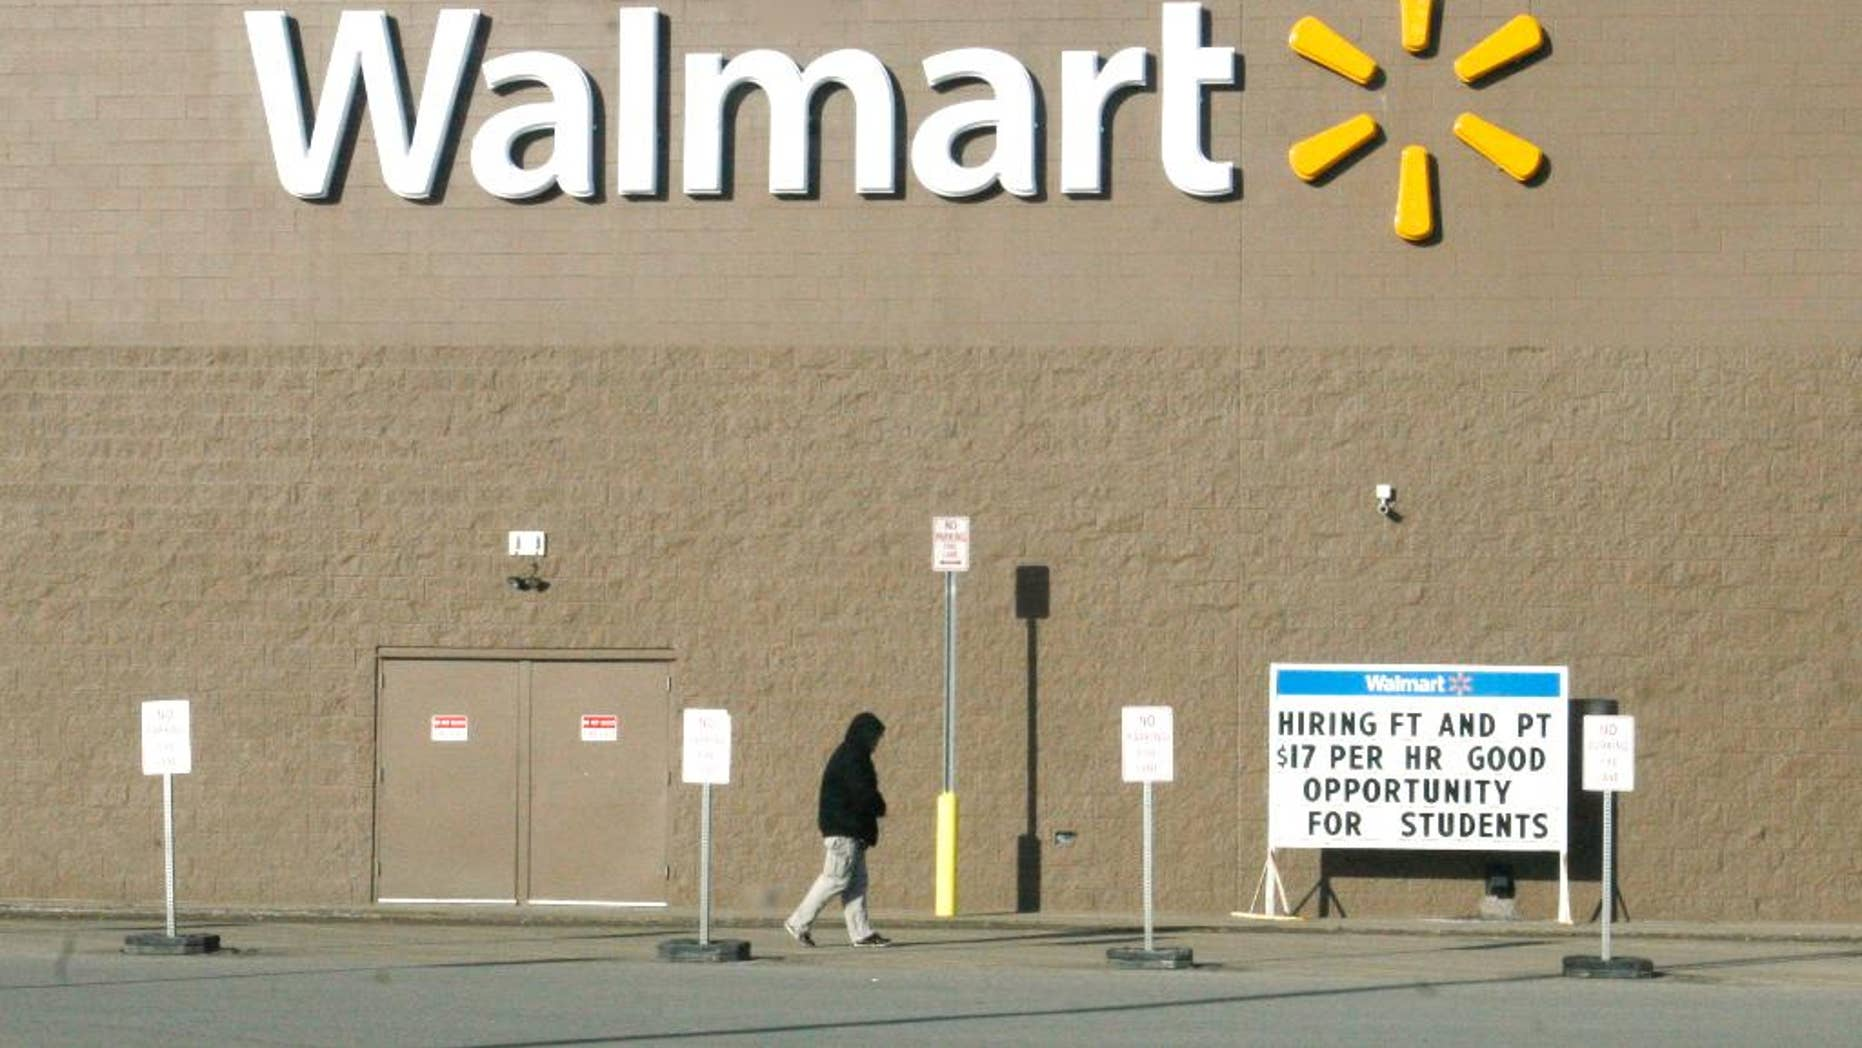 ADVANCE FOR USE SUNDAY, APRIL 13, 2014 AND THEREAFTER - A shopper walks next to a Walmart store on Friday, Feb. 28, 2014 in Williston, N.D. near a sign advertising a $17 hourly wage for new employees - a rate higher than in many cities. The Bakken shale fields oil boom has brought about a high cost of living in the area, especially for housing. (AP Photo/Martha Irvine)